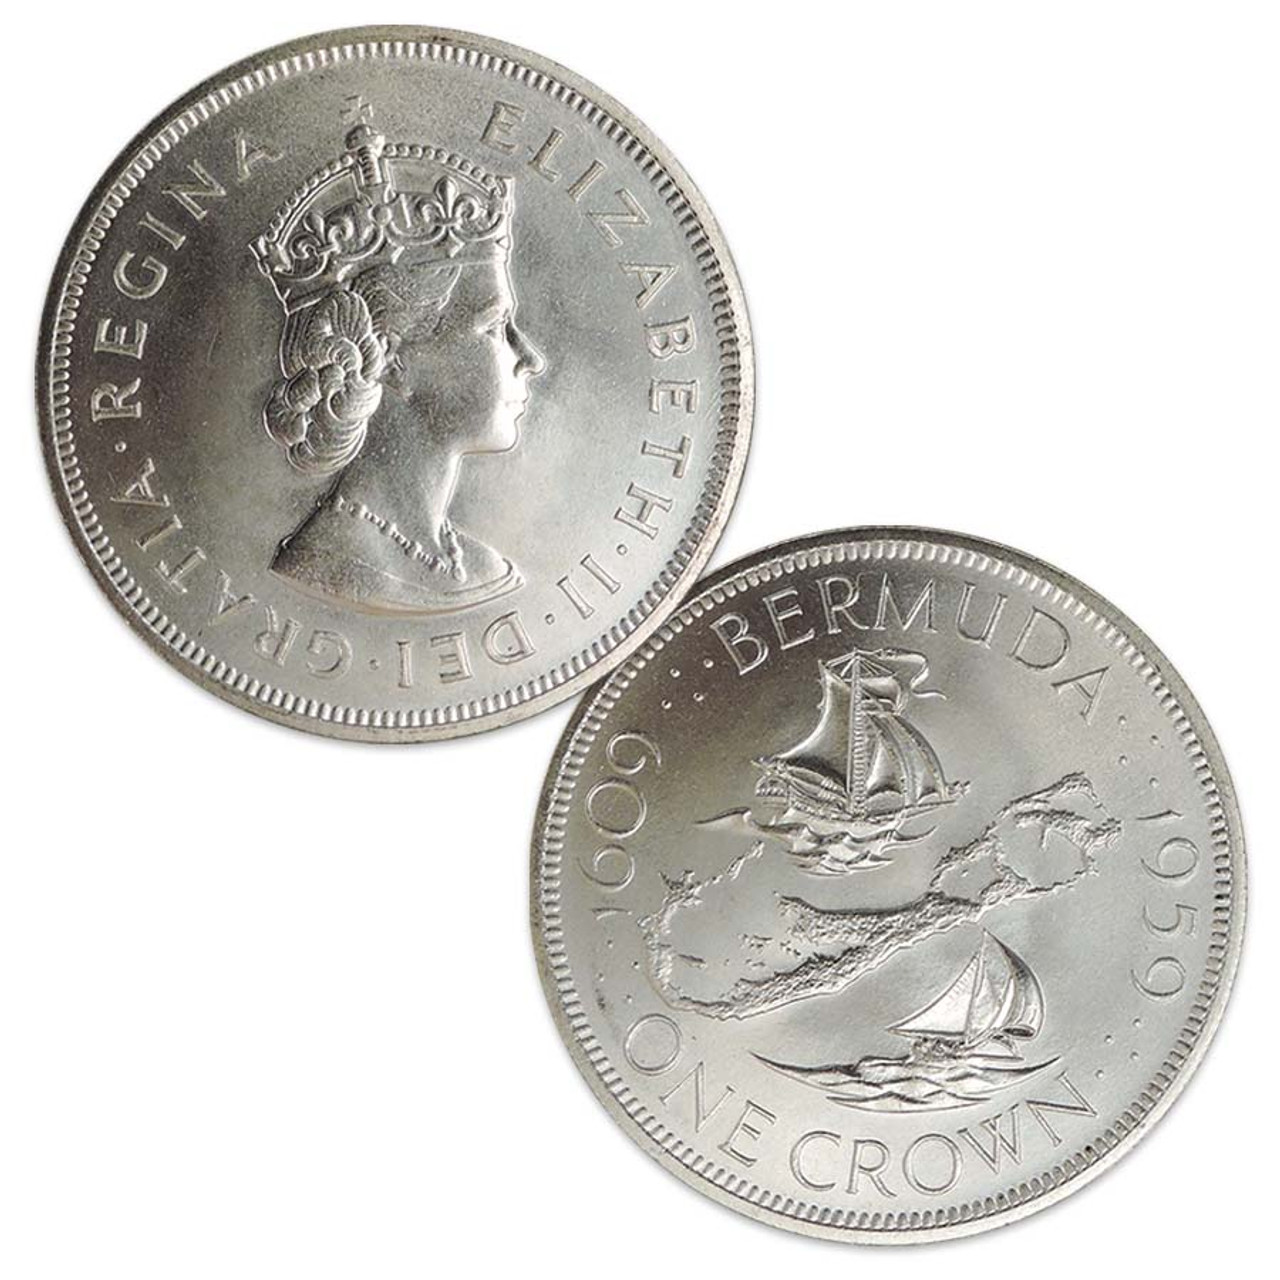 Bermuda 1959 Crown Brilliant Uncirculated Image 1